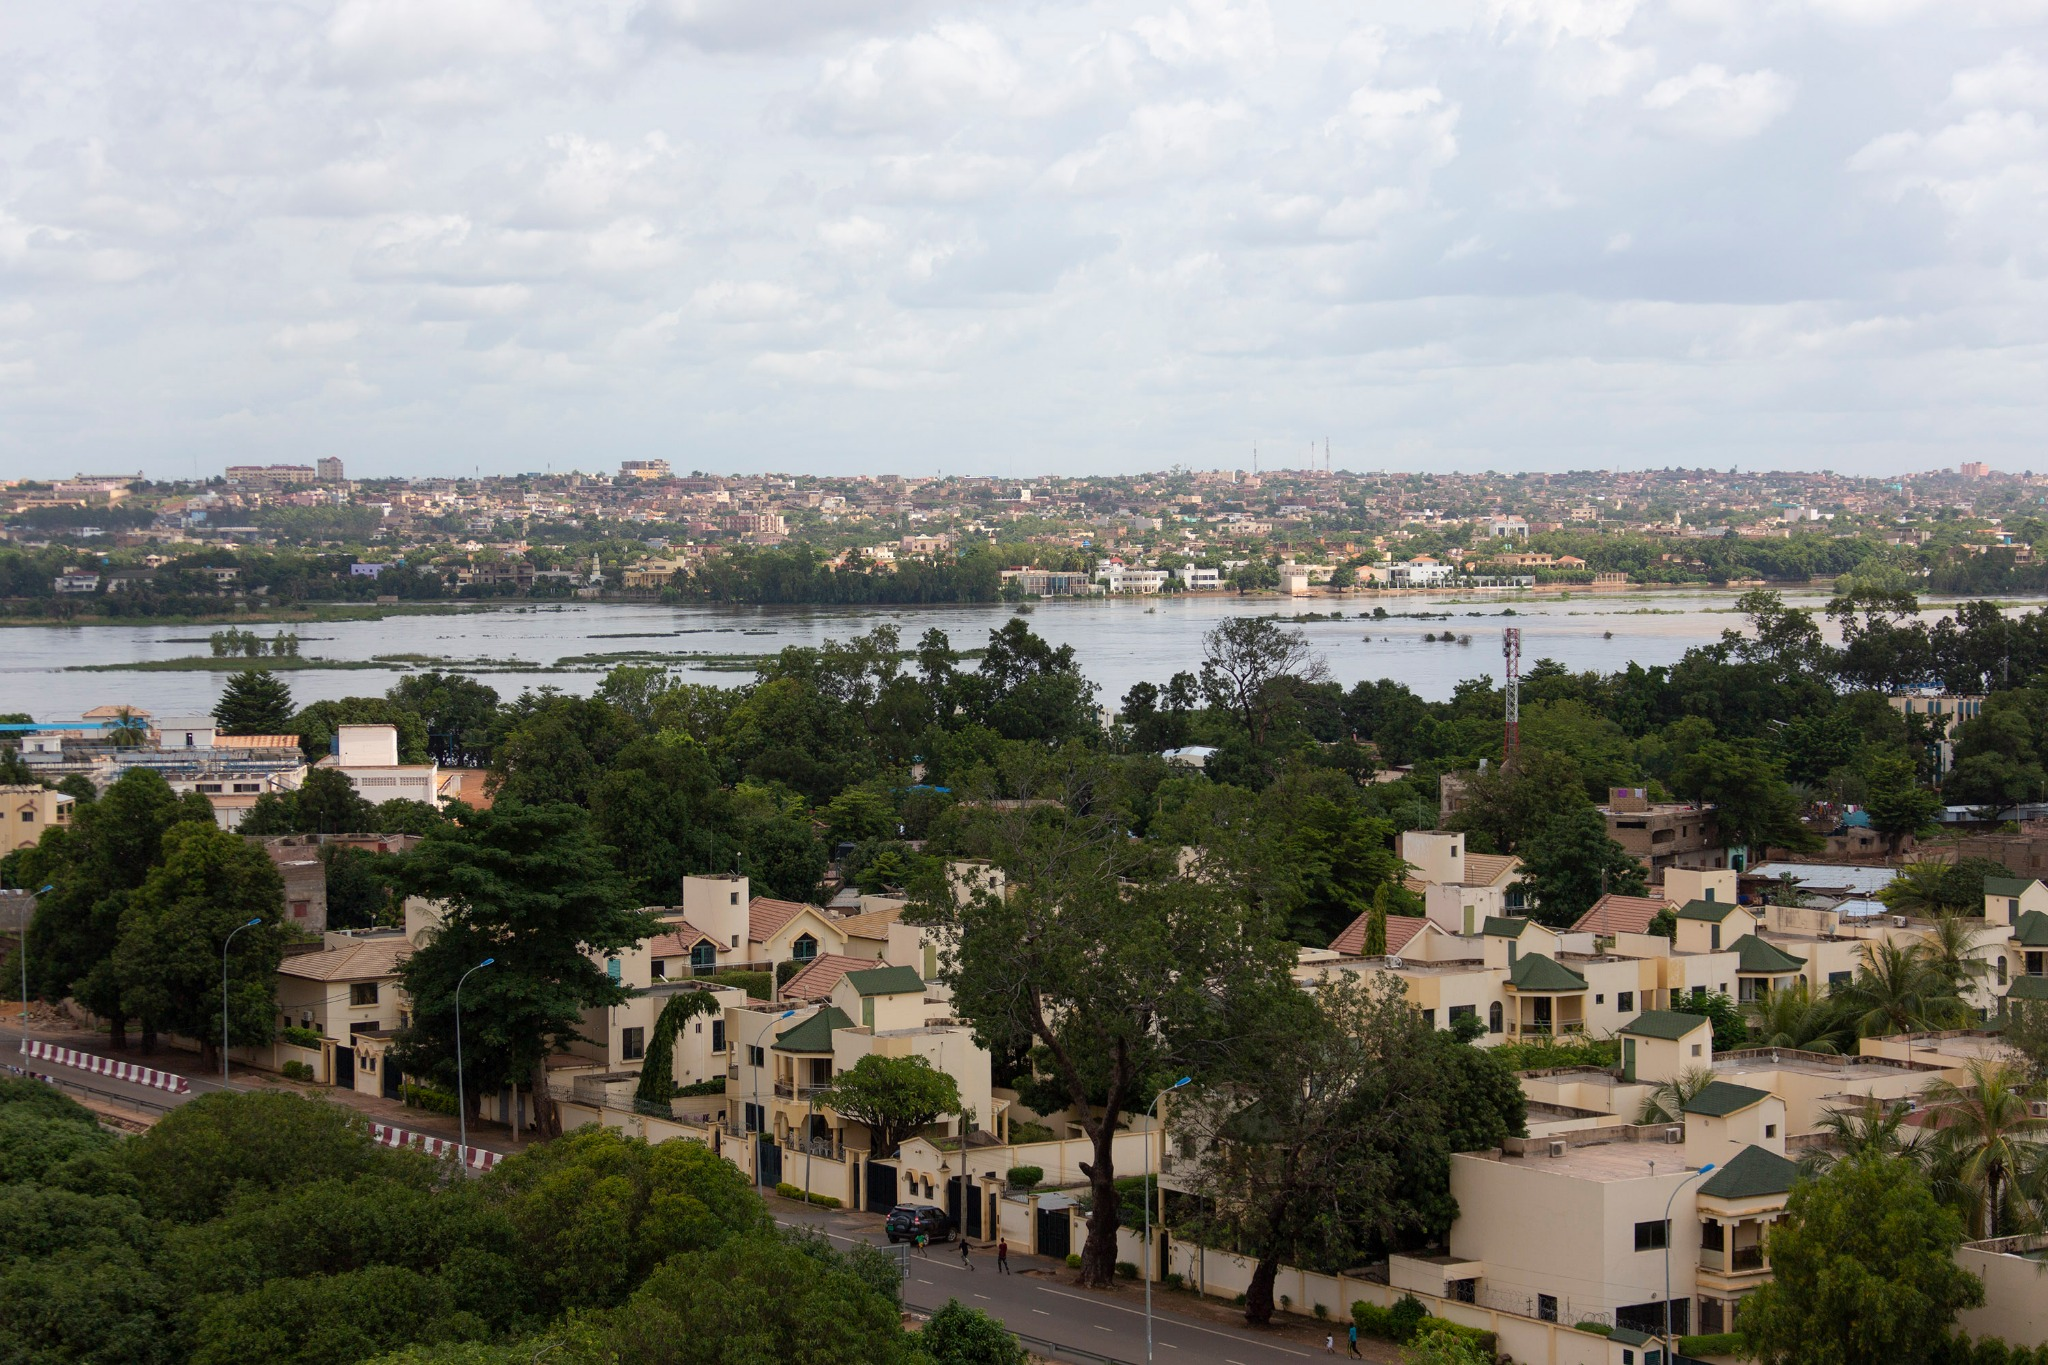 A view of the West African nation in the capital city of Bamako, Mali.